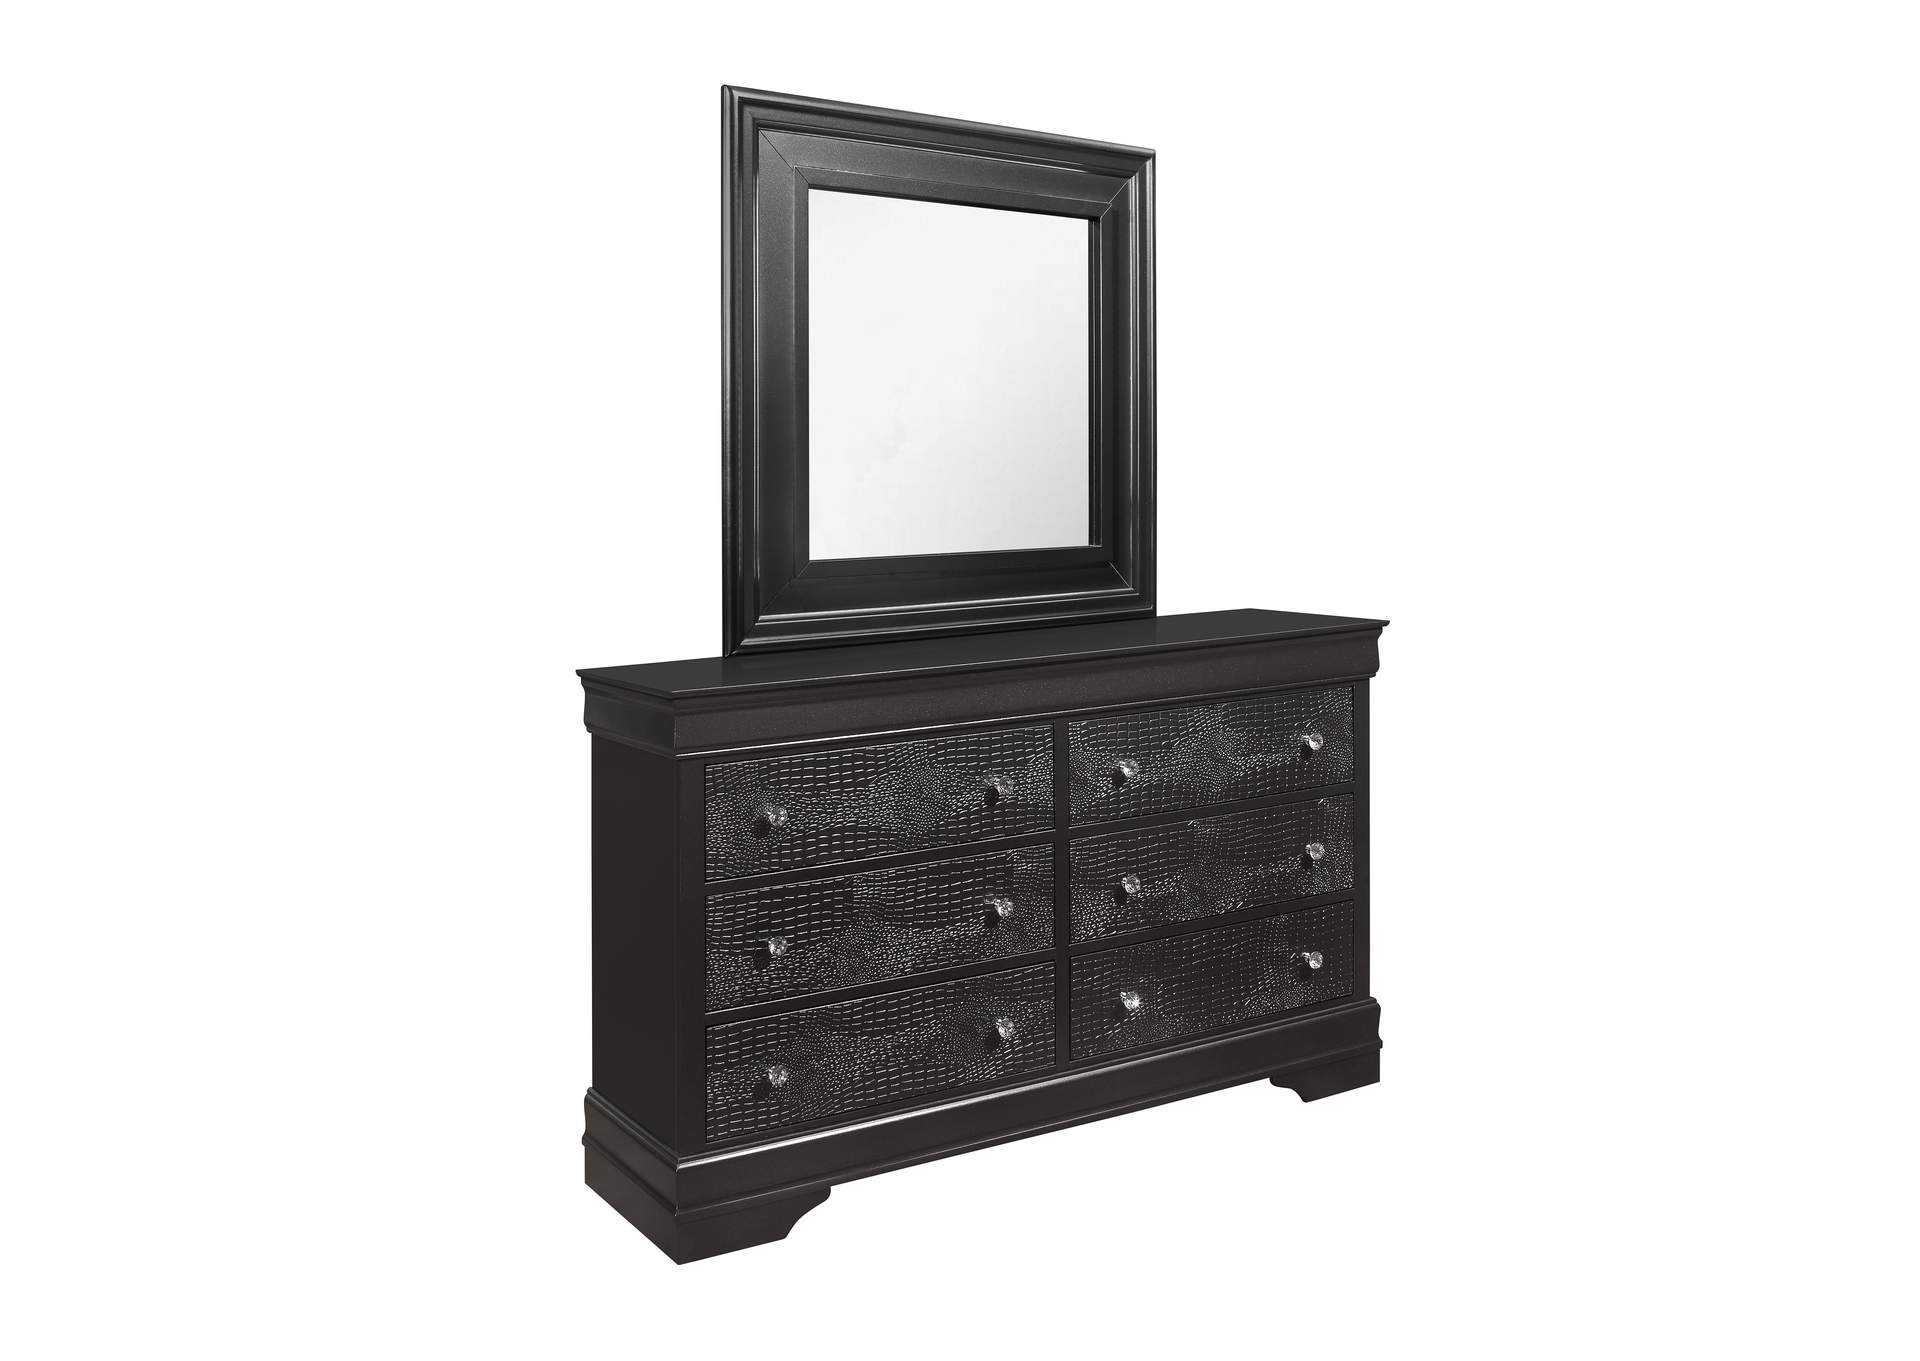 Pompei Metallic Grey Dresser and Mirror,Global Furniture USA